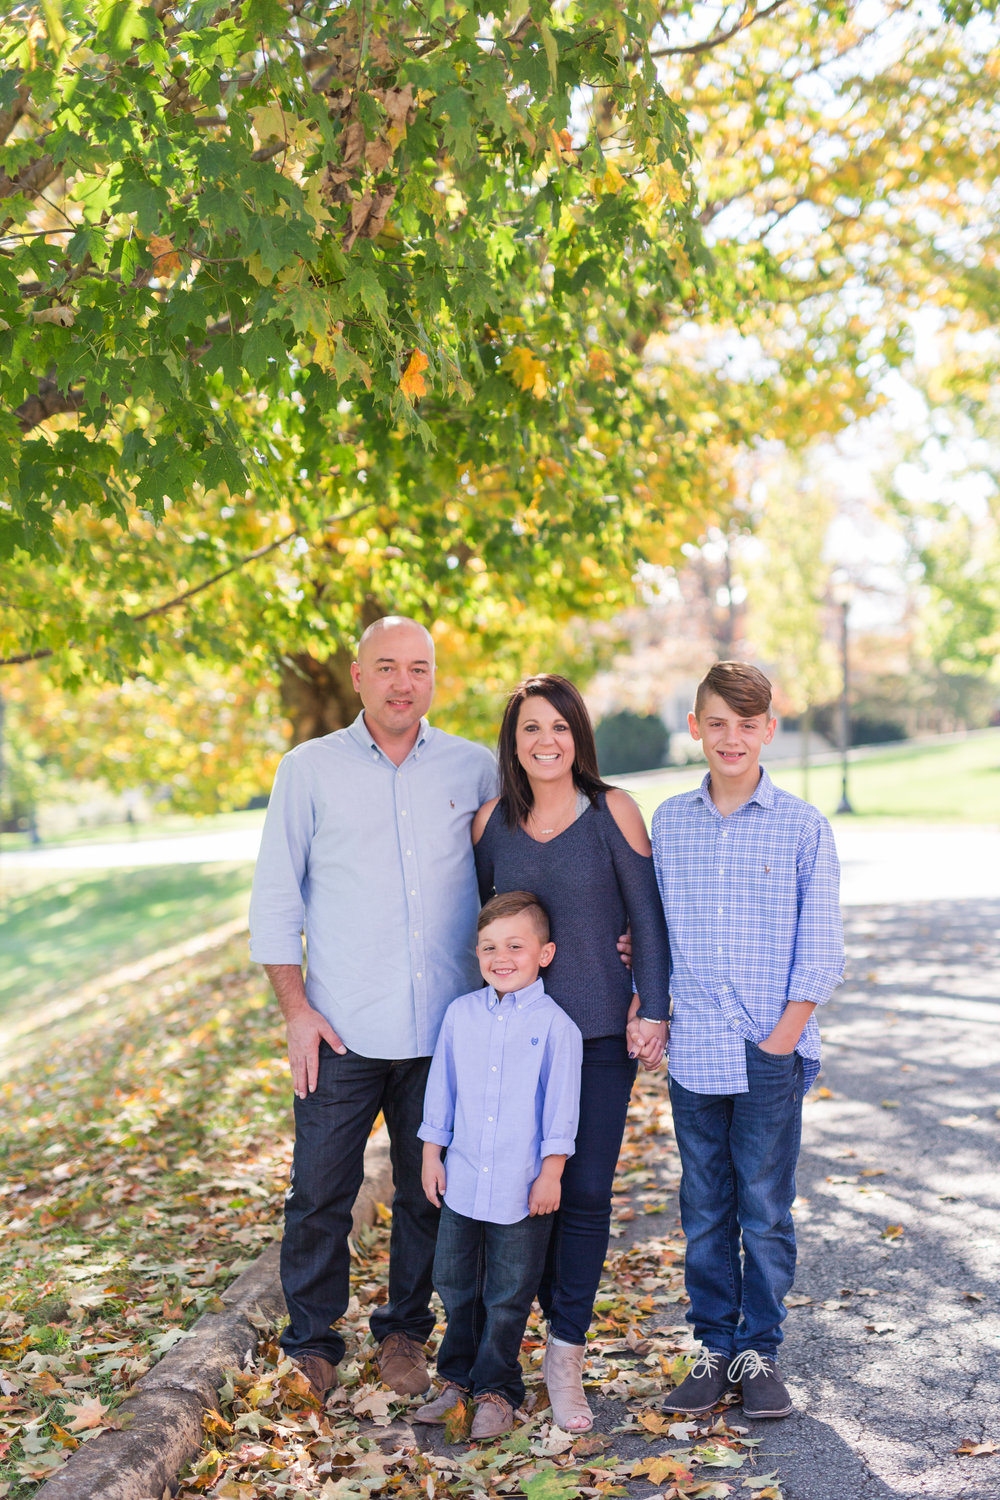 Lynchburg Family Photographer || Central VA Photographer || www.ashleyeiban.com